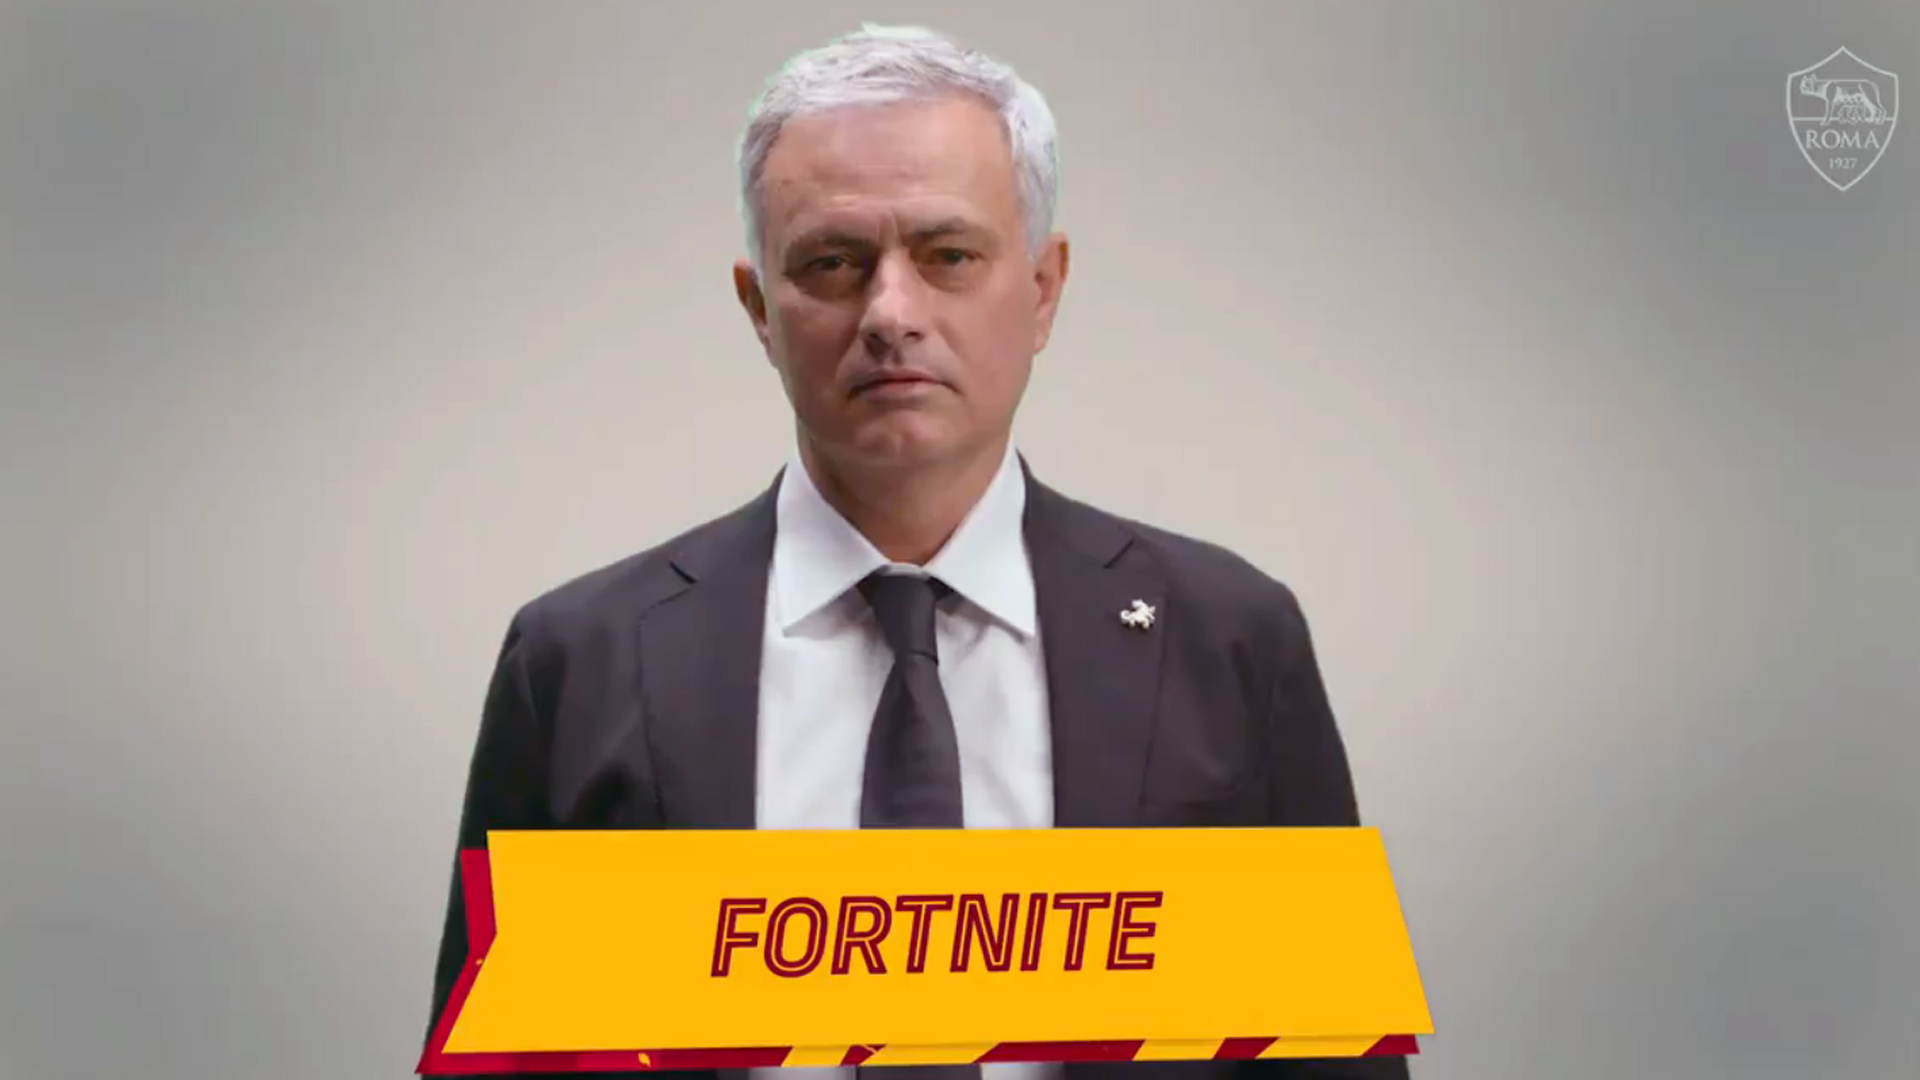 José Mourinho blames Fortnite for keeping his players up all night